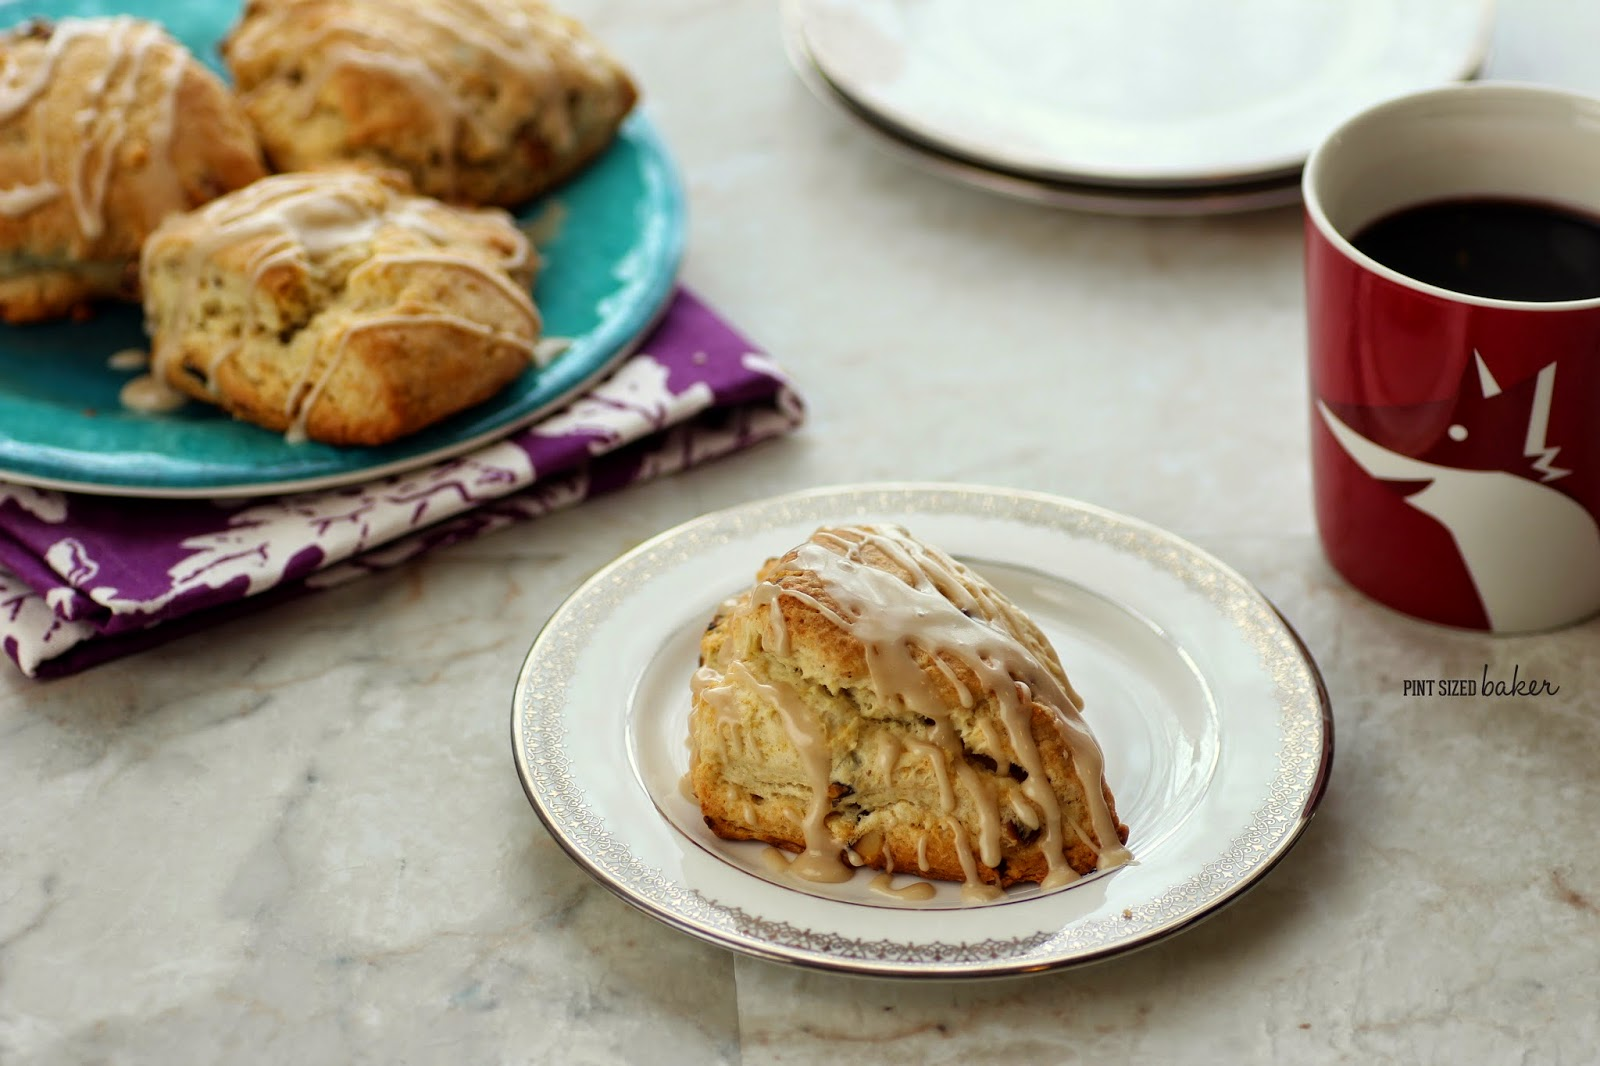 My family loves these Light and Fluffy Maple Pecan Scones! Homemade an ready to eat in under an hour!